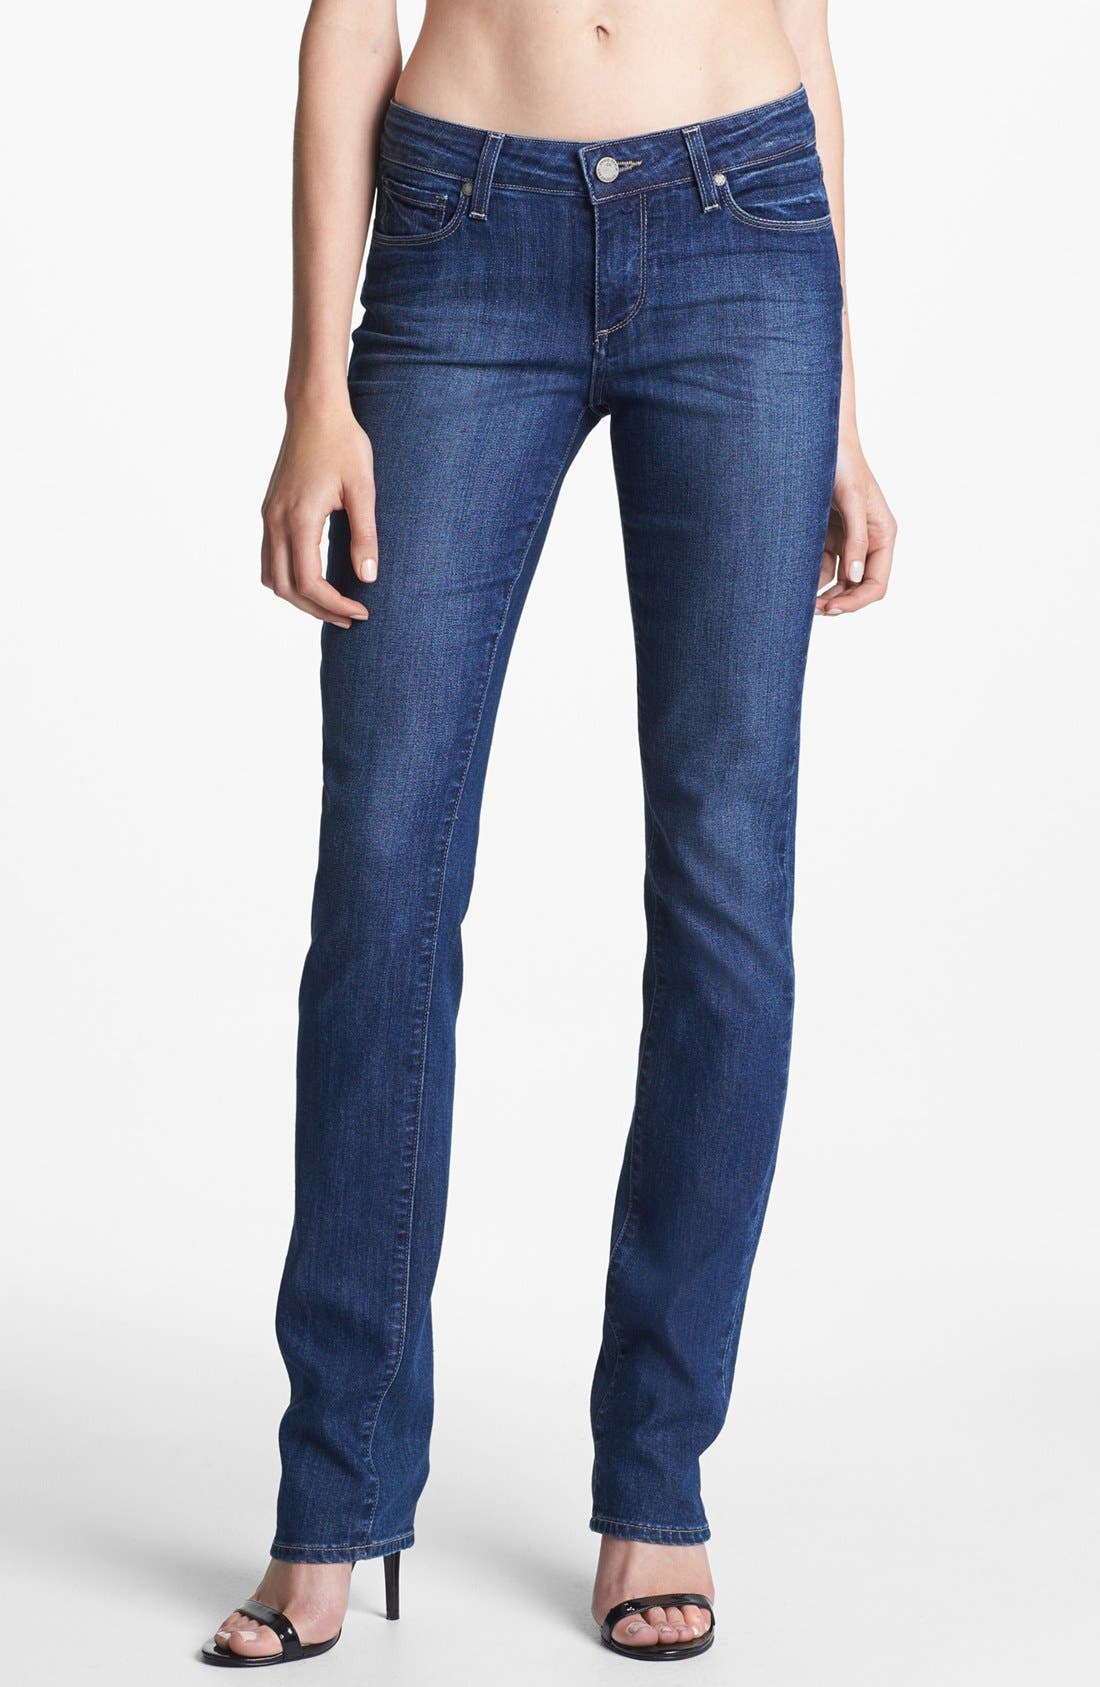 Alternate Image 1 Selected - Paige Denim 'Skyline' Straight Leg Stretch Jeans (Hadley)